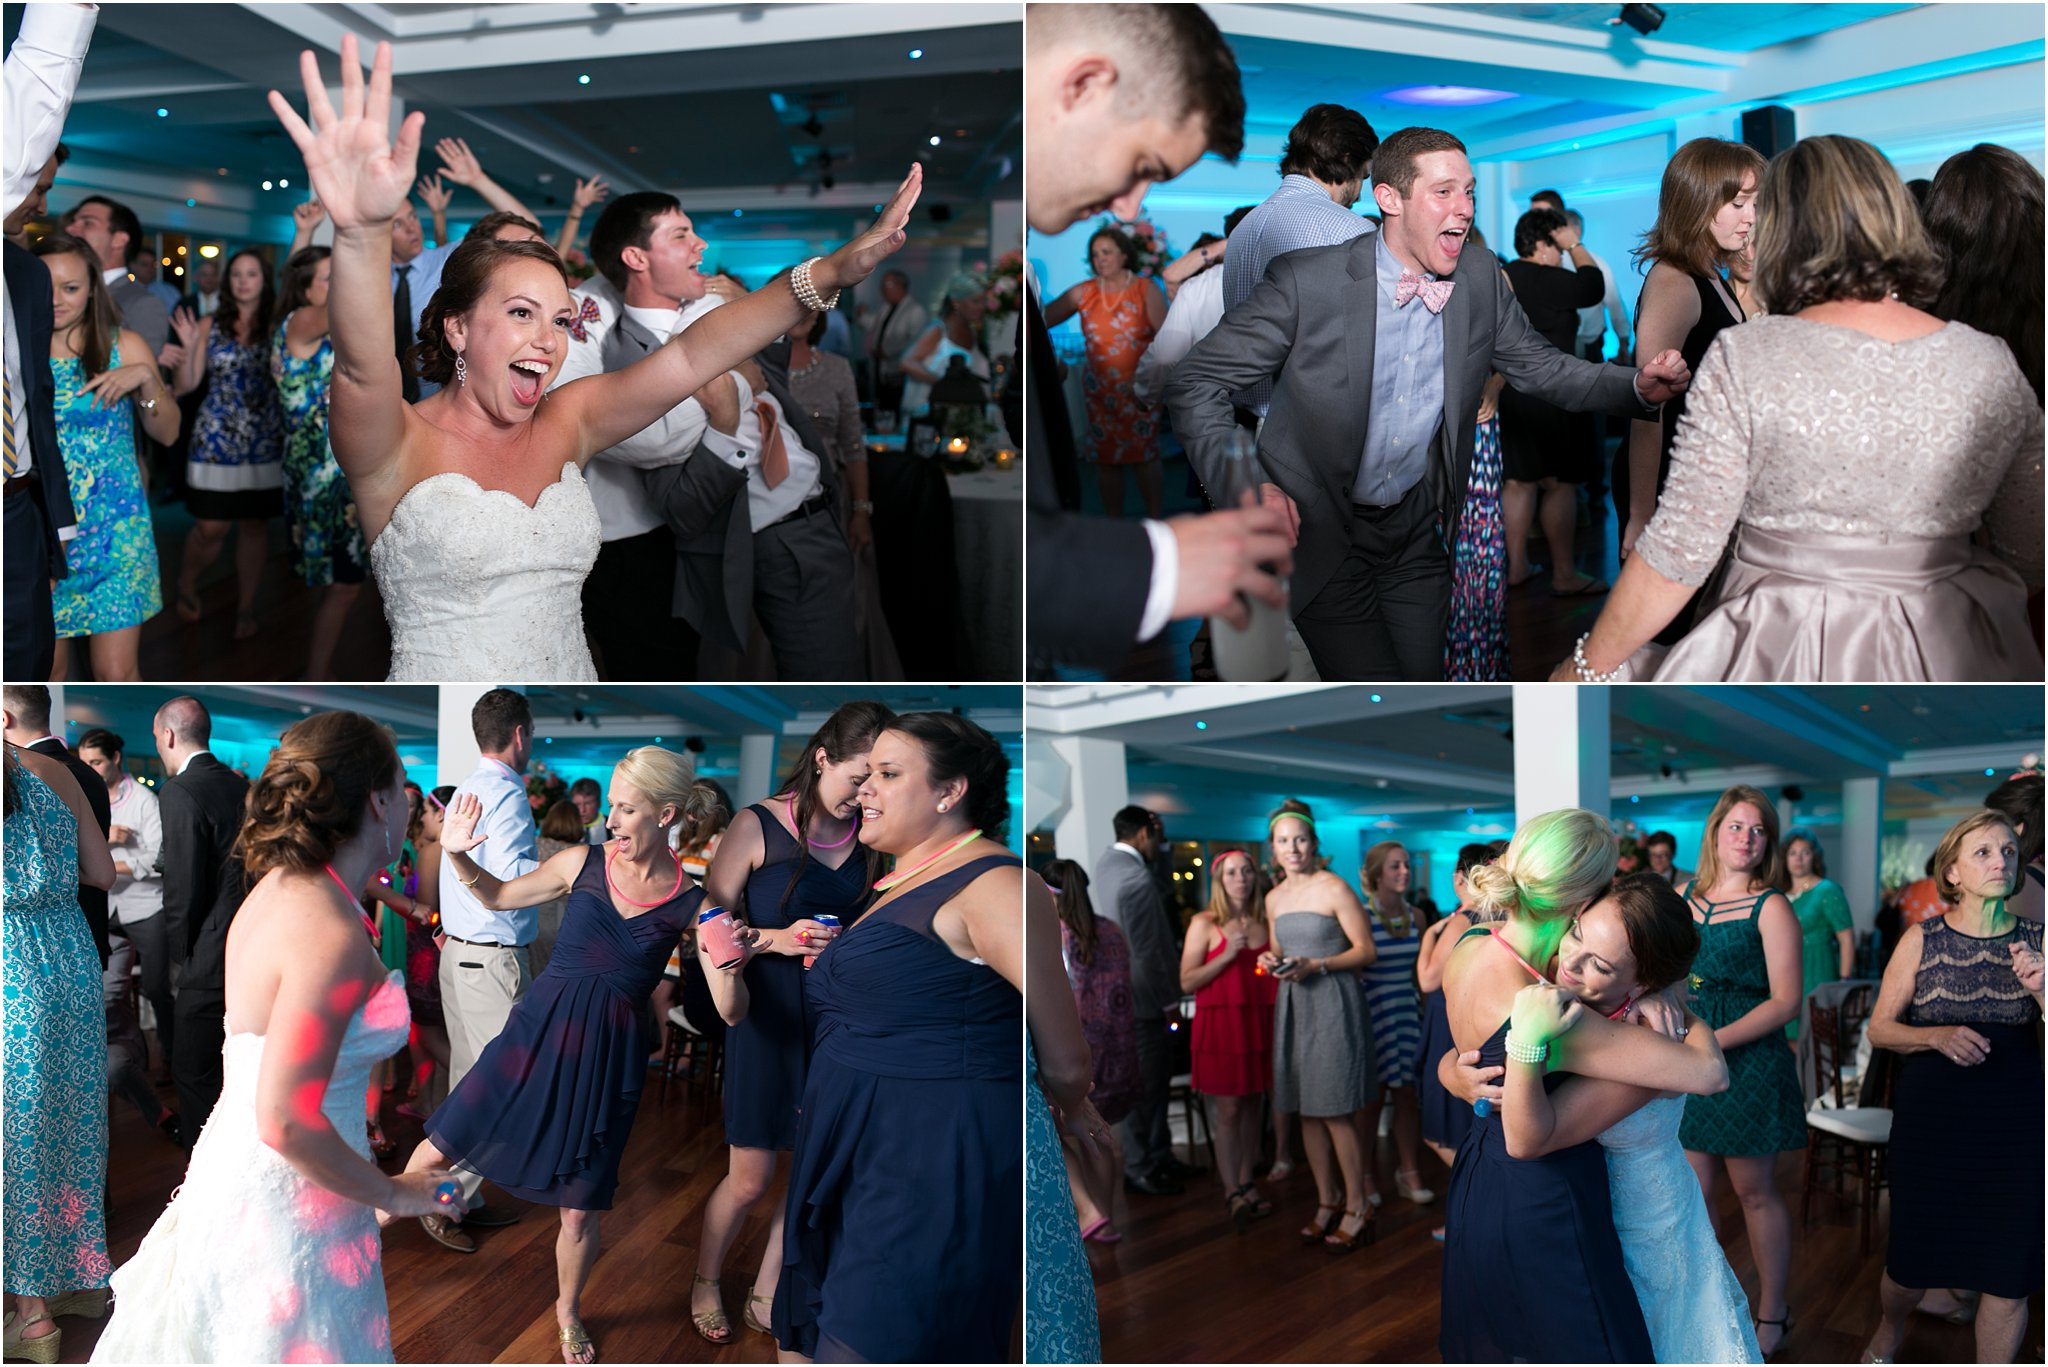 jessica_ryan_photography_wedding_photography_virginiabeach_virginia_candid_authentic_wedding_portraits_marina_shores_yacht_club_chesapeake_bay_1960